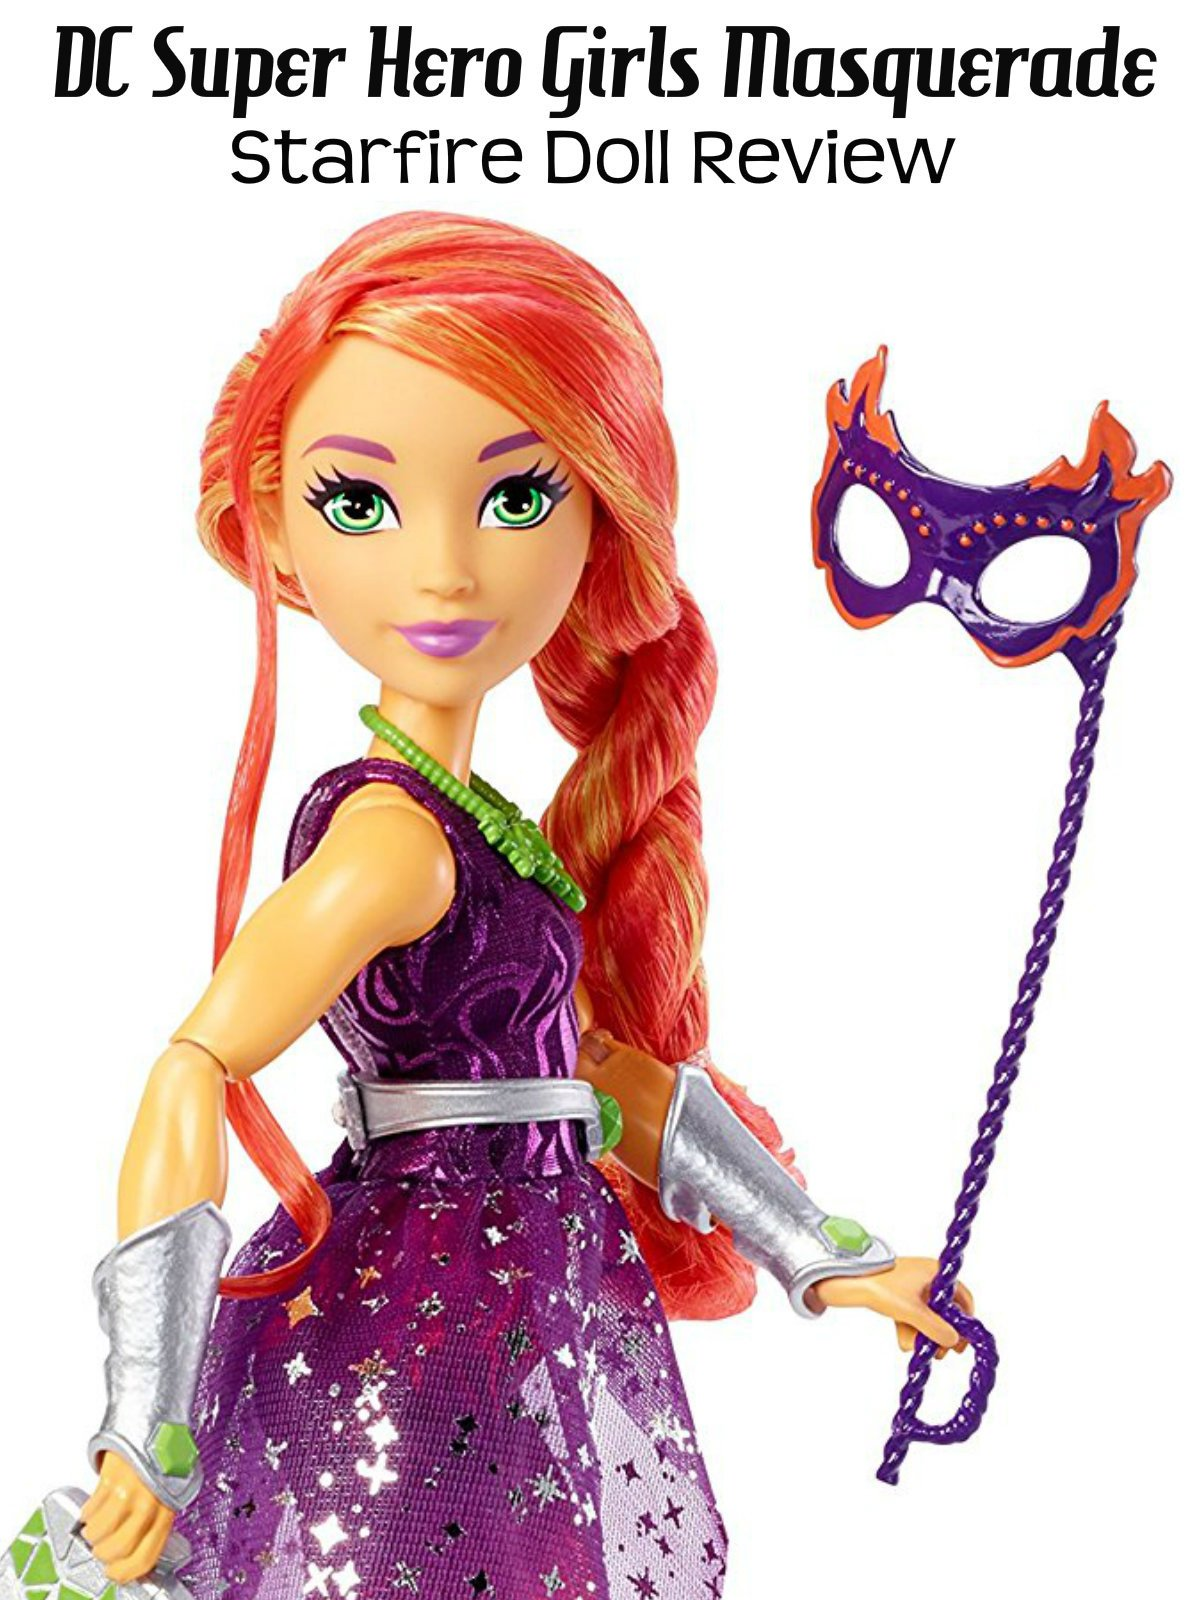 Review: DC Super Hero Girls Masquerade Starfire Doll Review